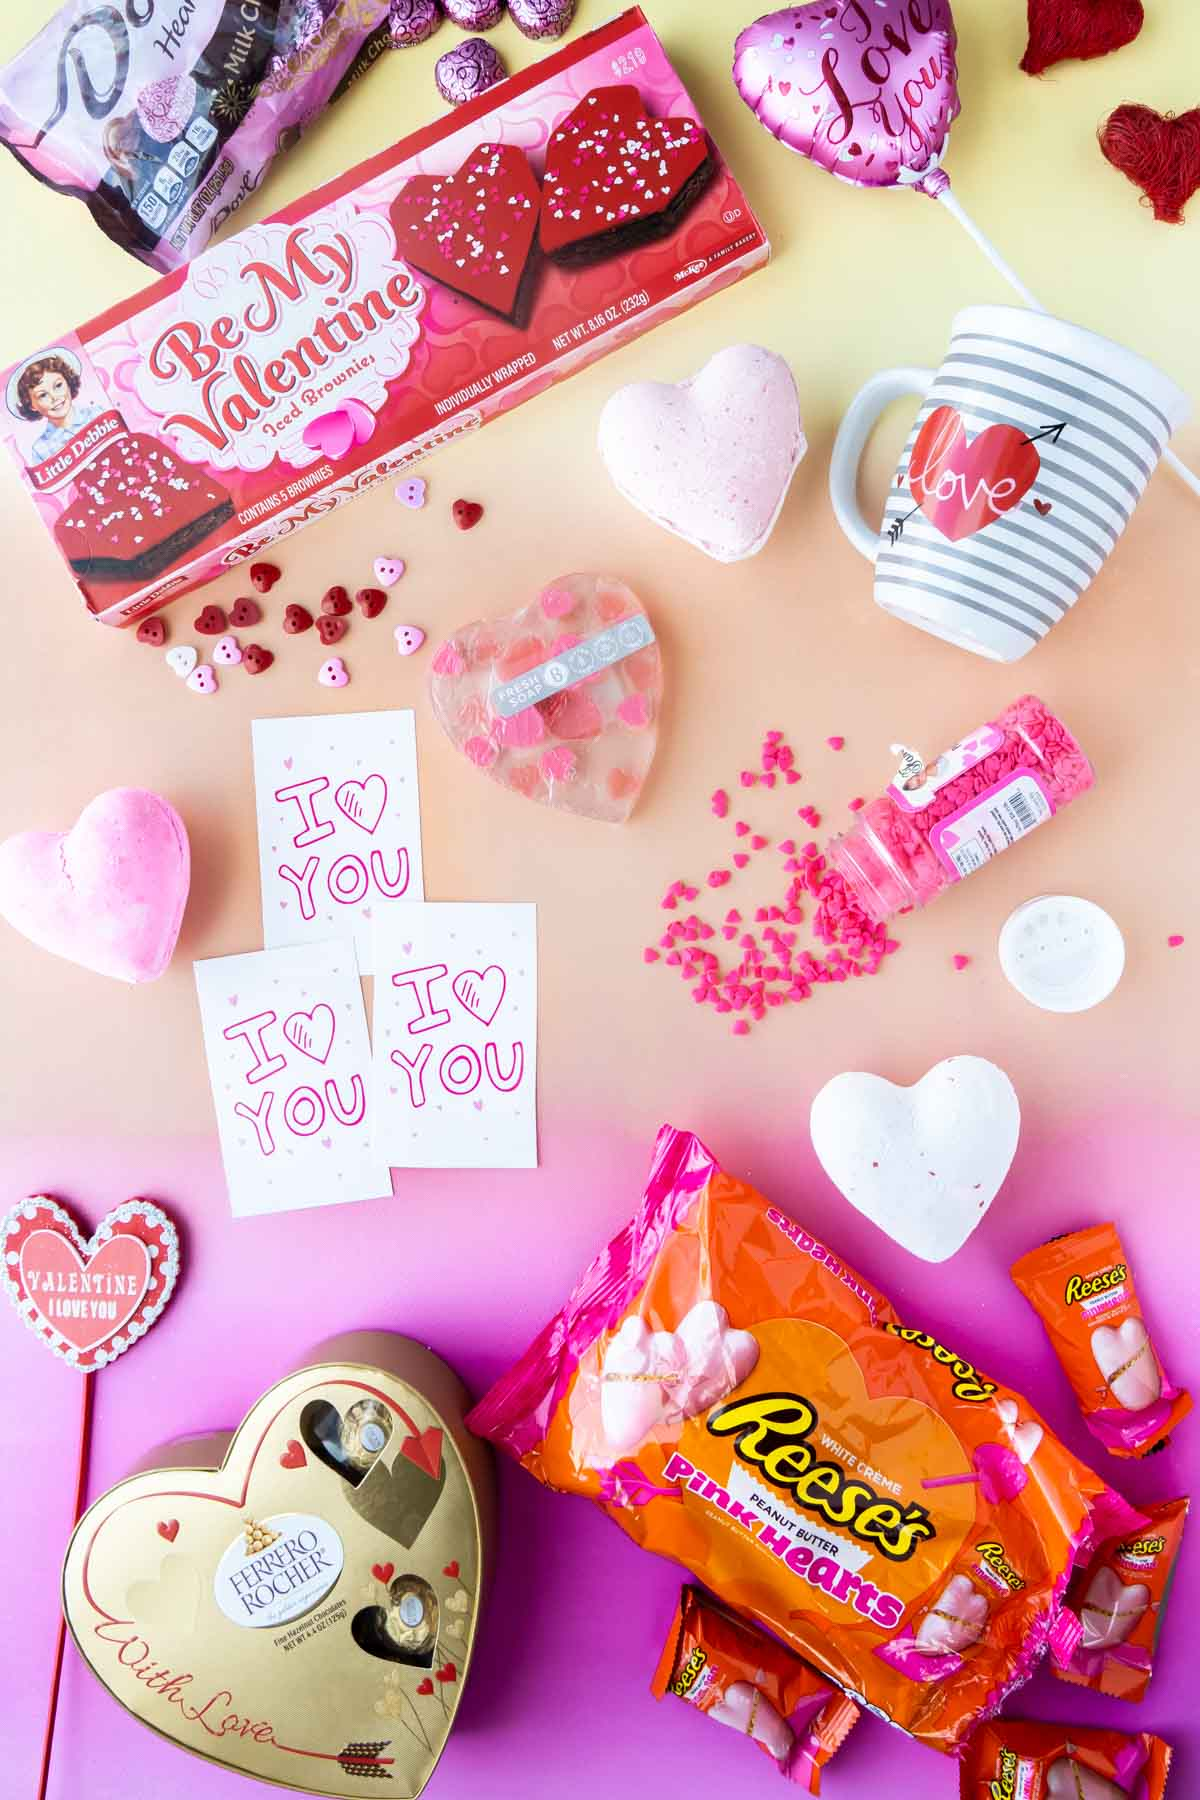 Flat lay of Valentine's Day gift items